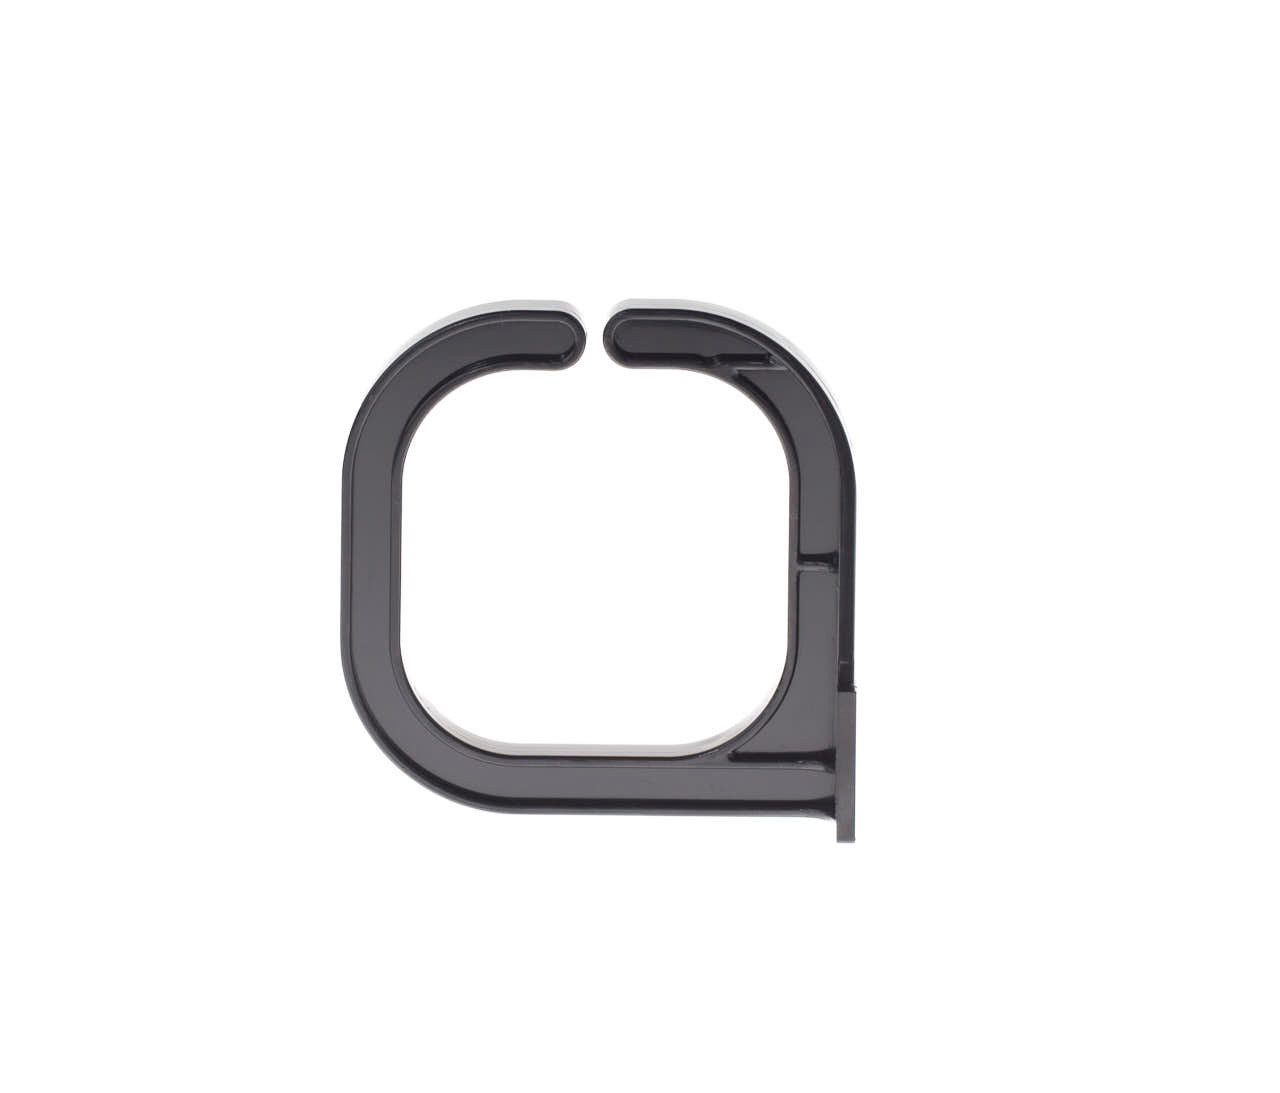 Image for 1RU Medium Plastic Cable Management Ring 62 x 62mm CX Computer Superstore